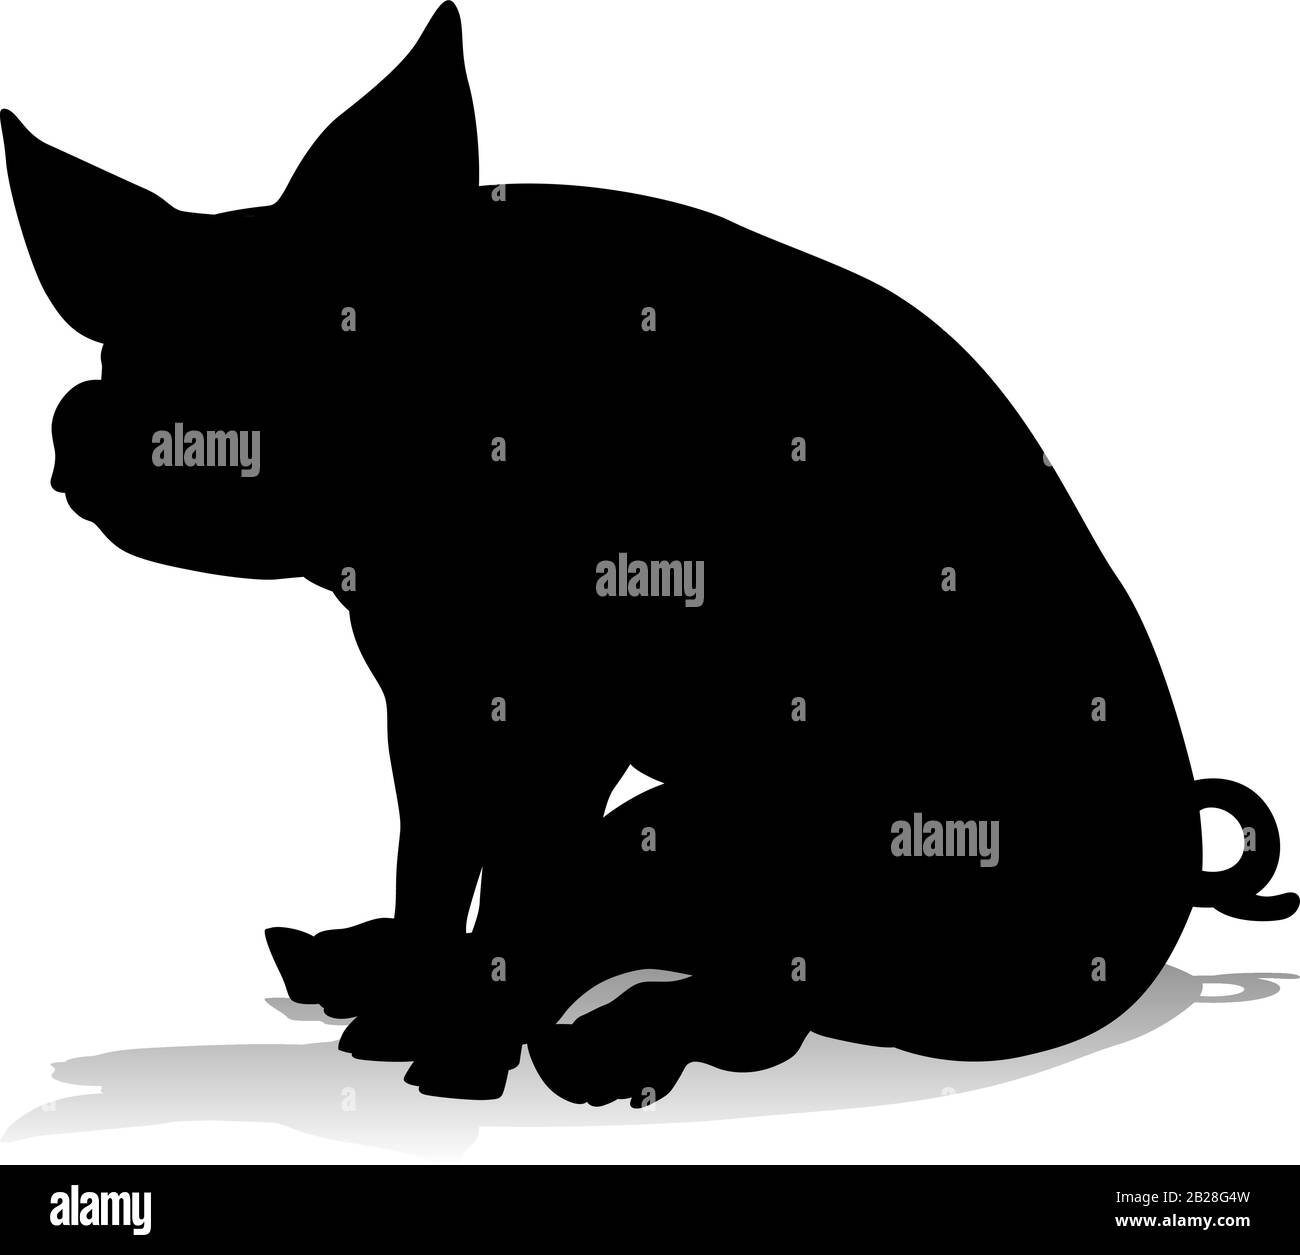 Pig Silhouette Farm Animal Stock Vector Image Art Alamy High quality pig silhouette gifts and merchandise. https www alamy com pig silhouette farm animal image345624969 html